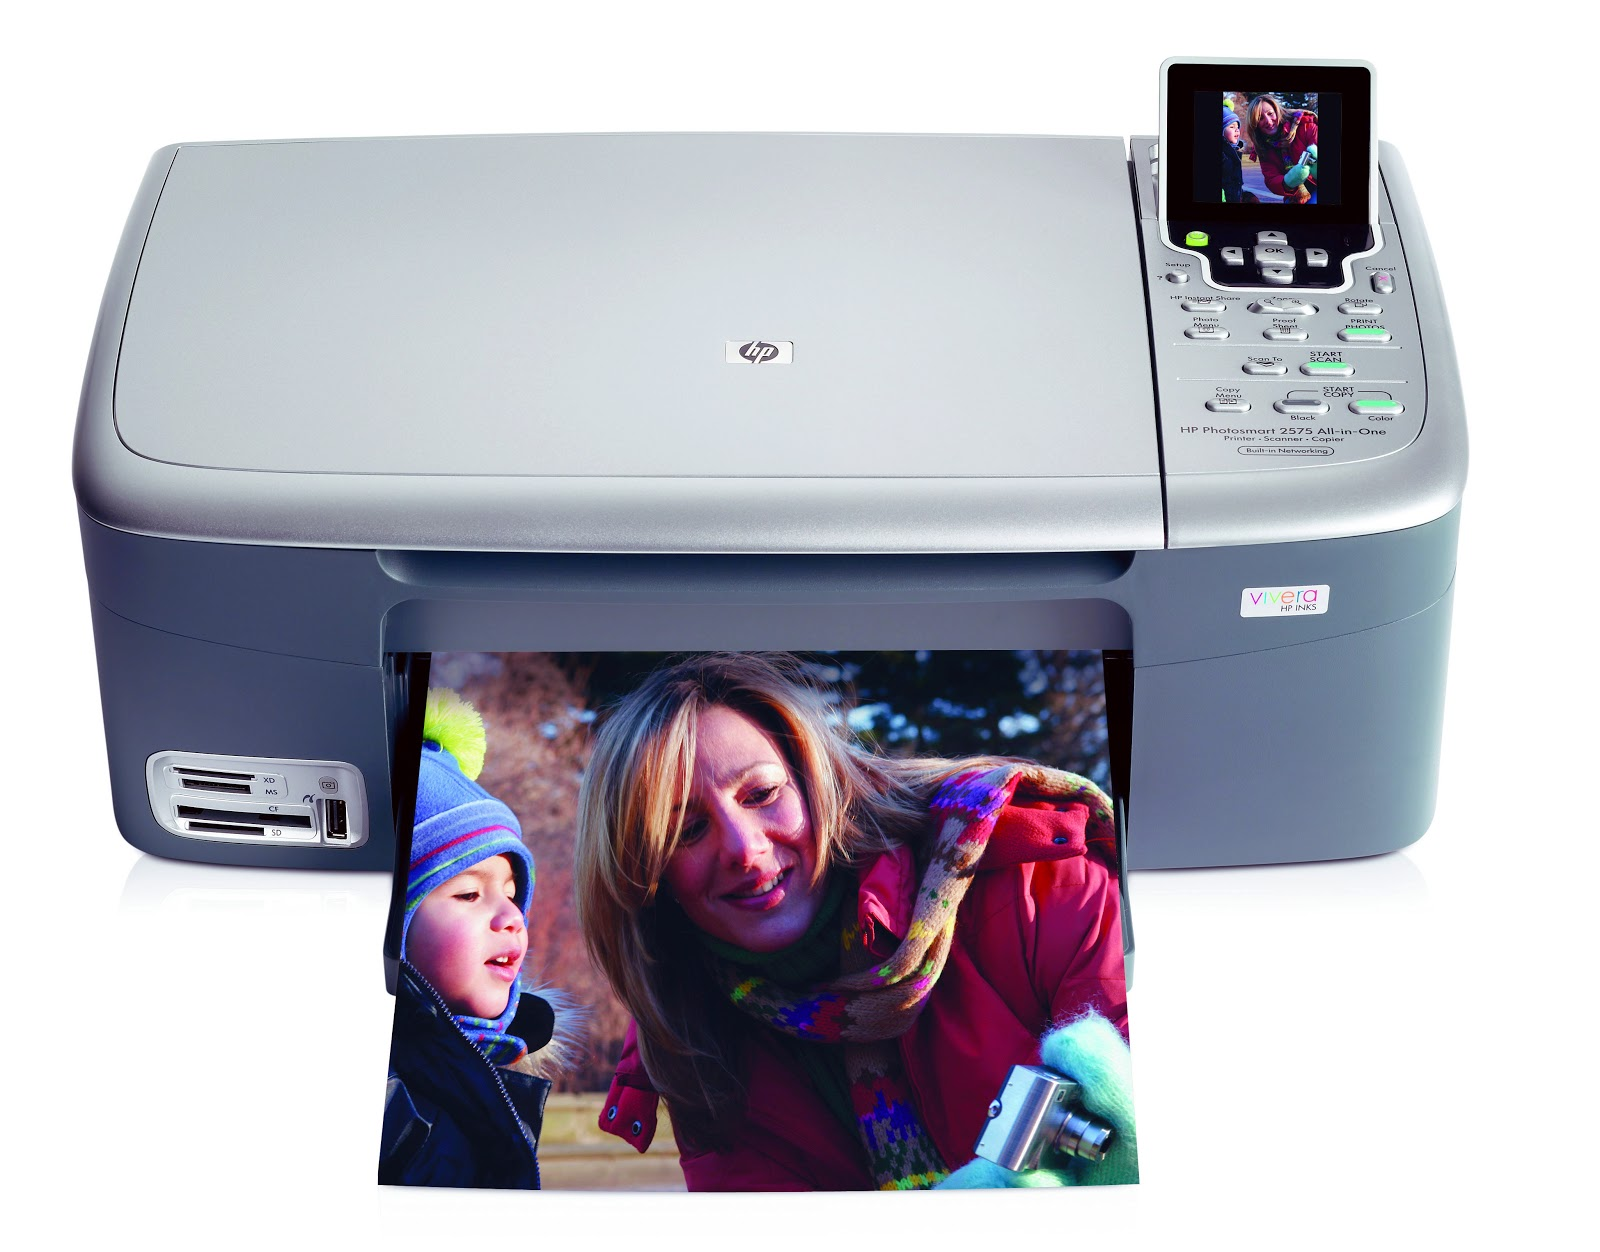 If you just bought this HP Photosmart 2575 printer, it's time now to  explore all the exciting features in detail of this printer. There is an  official guide ...